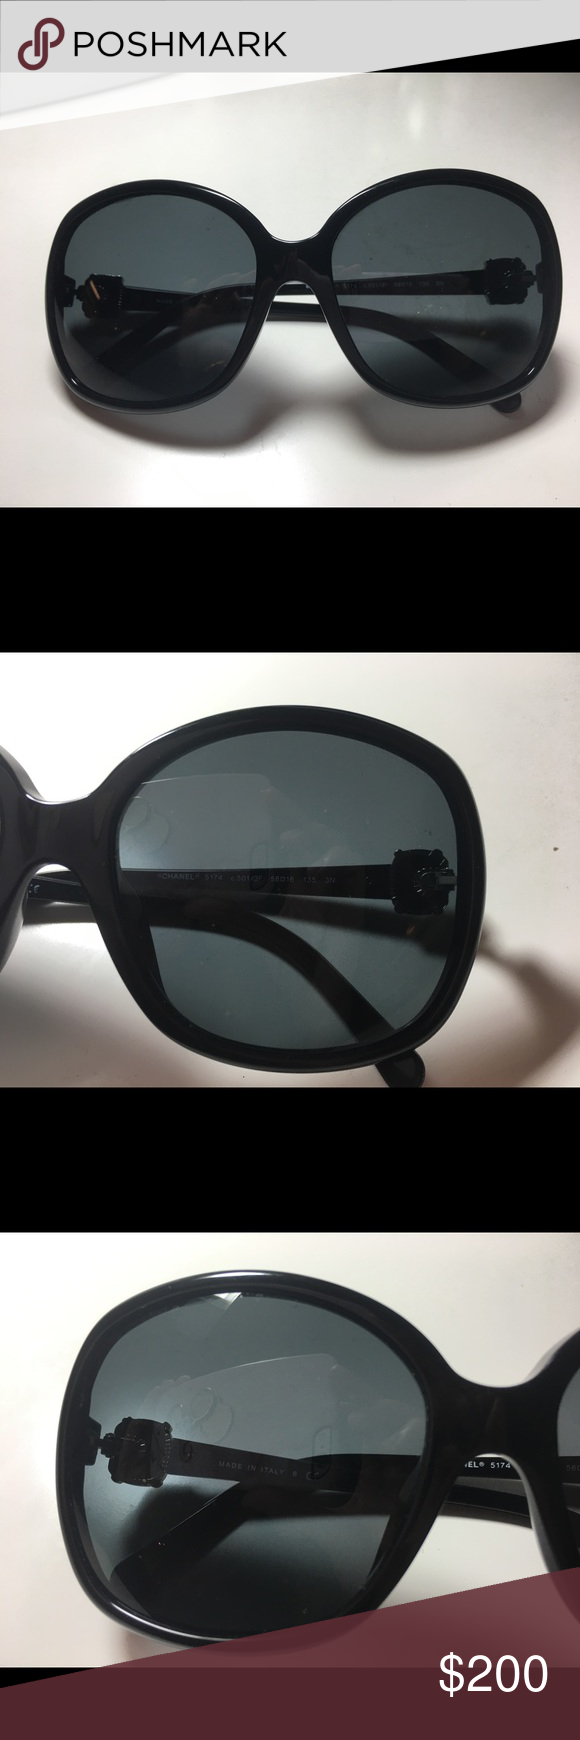 2a760d9a2c434 CHANEL WOMEN S 5174 CC Logo Sunglasses black Chanel style 5174 CC Logo  Oversized Black color Sunglasses